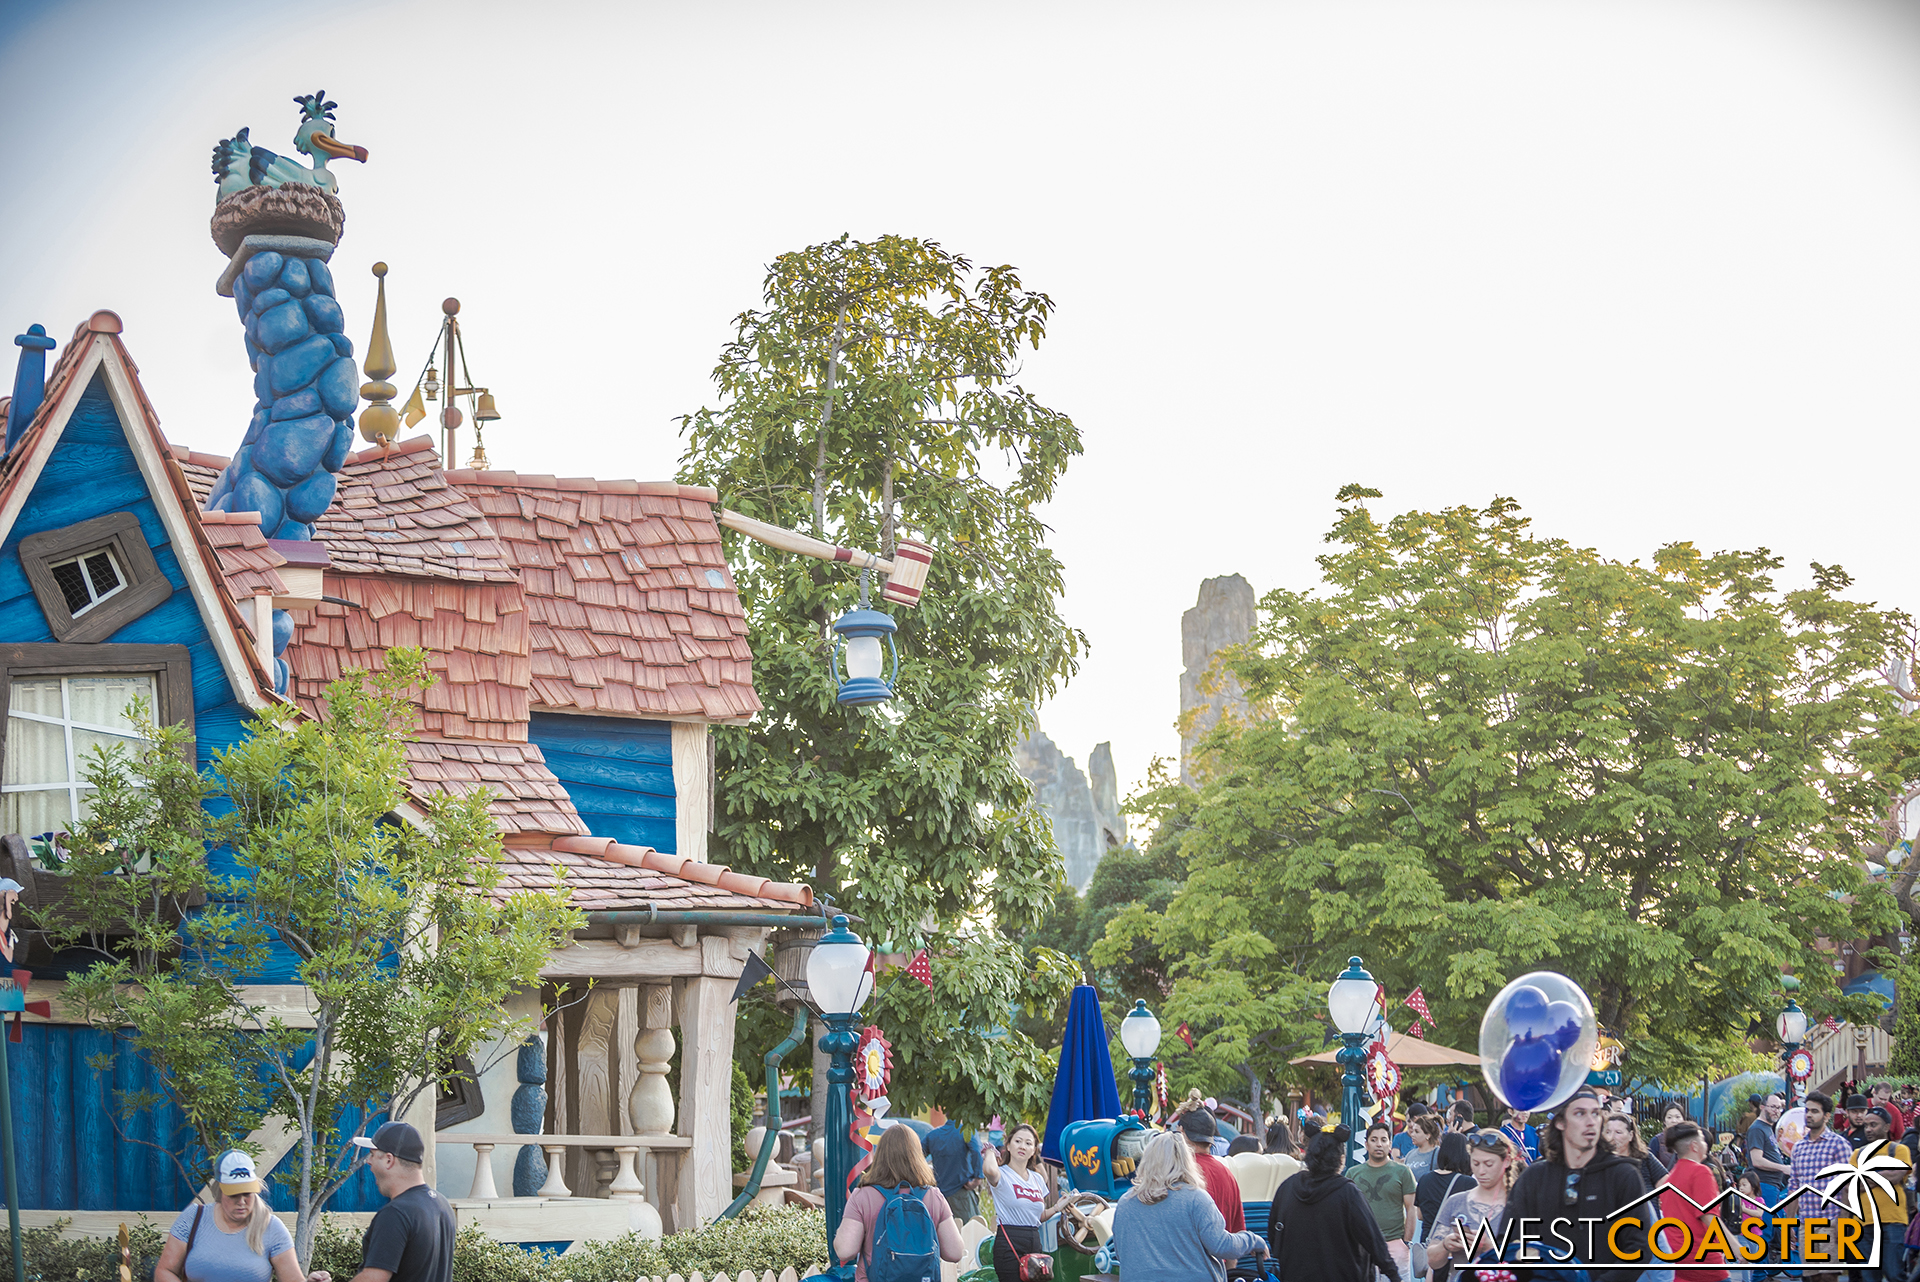 How does Batuu look from Mickey's Toontown?